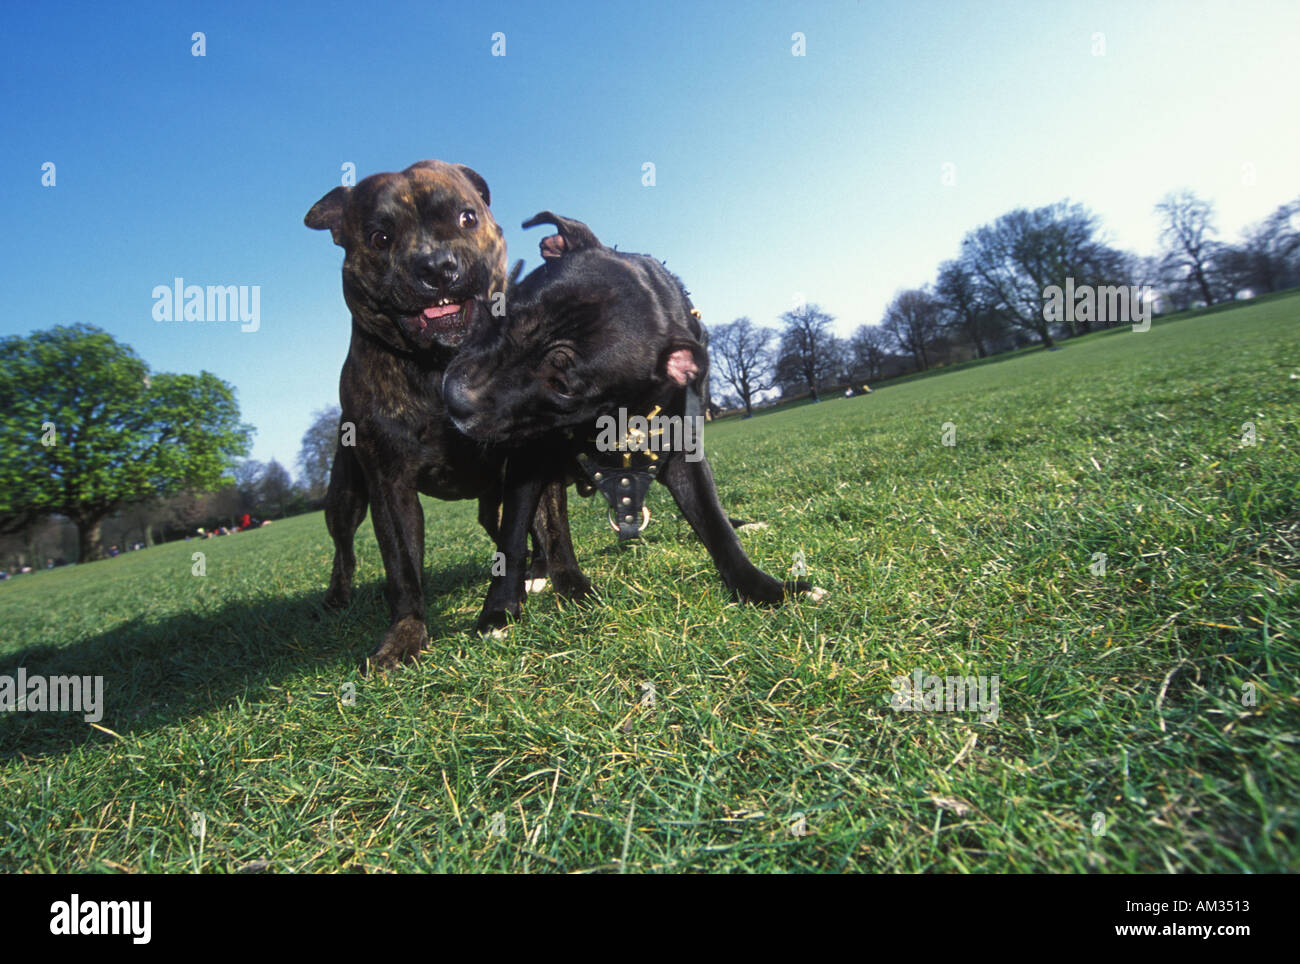 Staffordshire Pitbull Terriers tussle in the park London - Stock Image